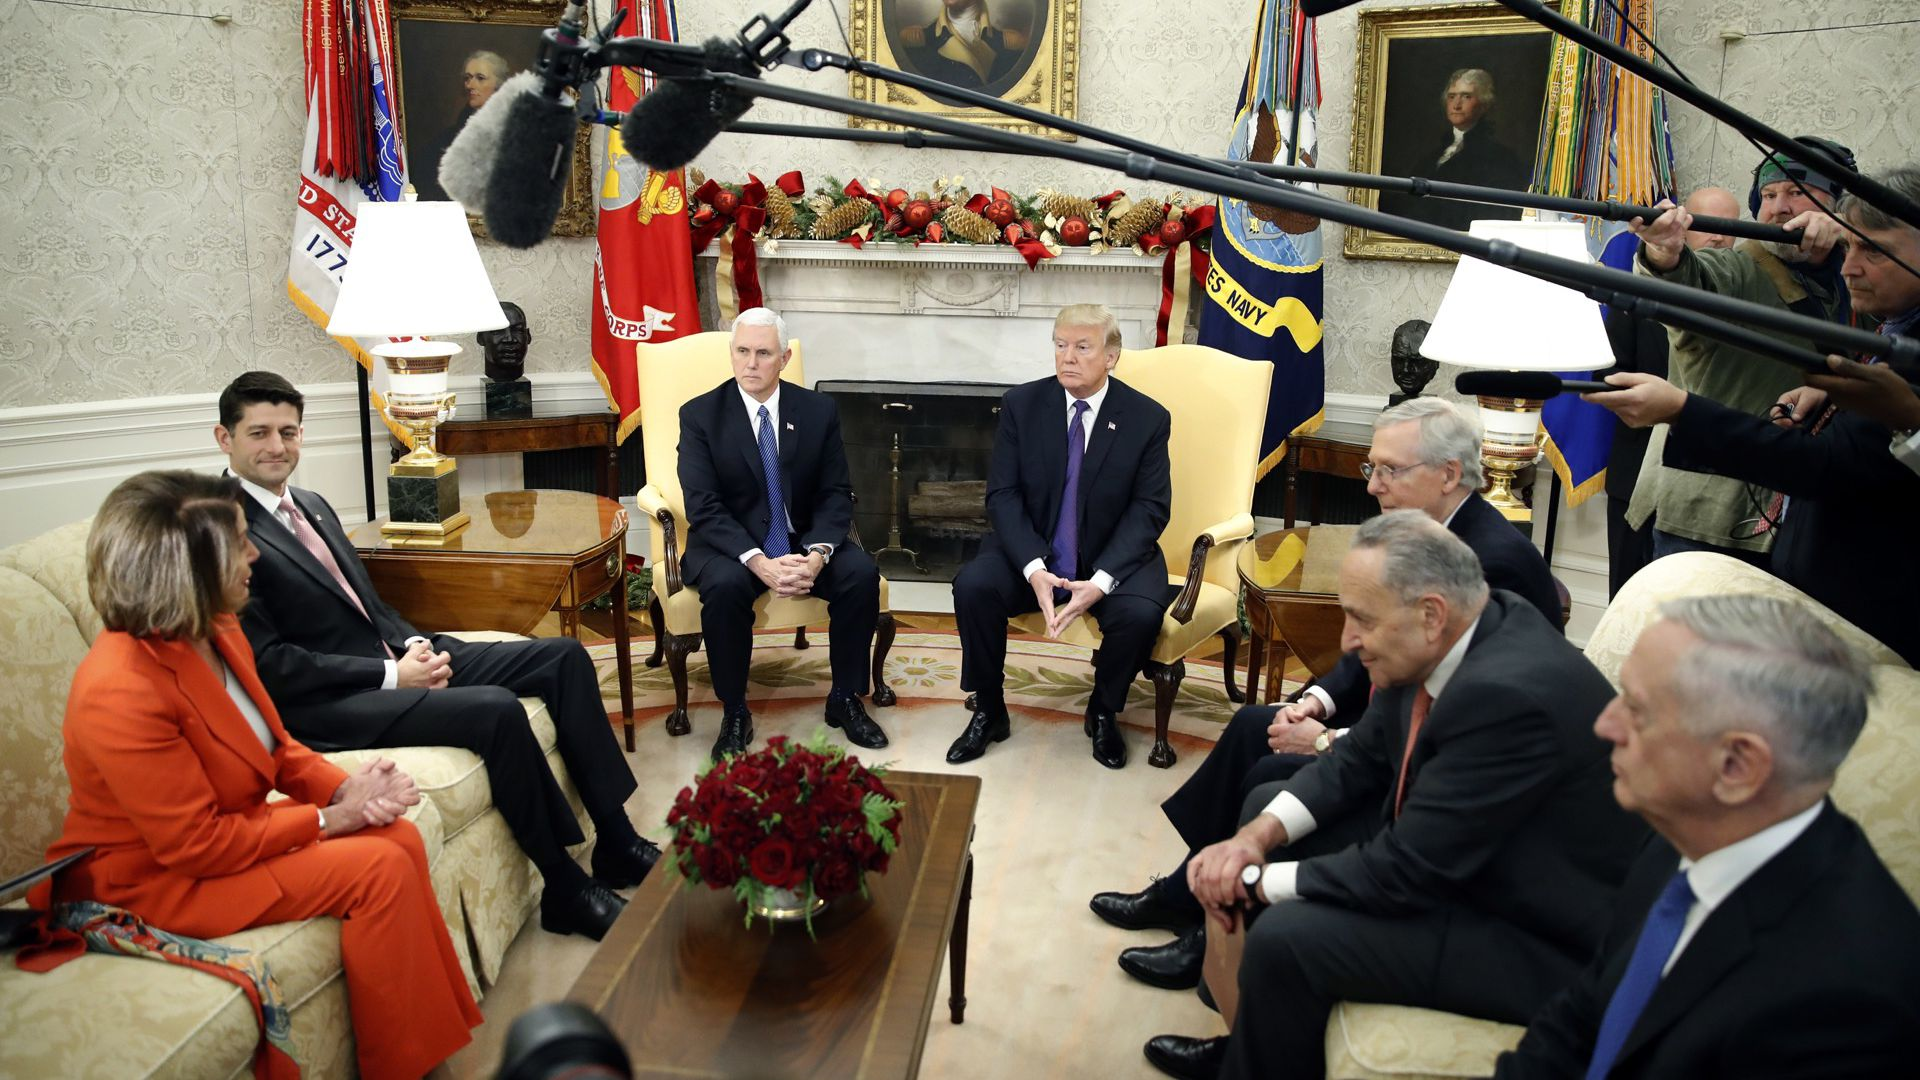 President Trump meets with bipartisan congressional leaders in the Oval Office